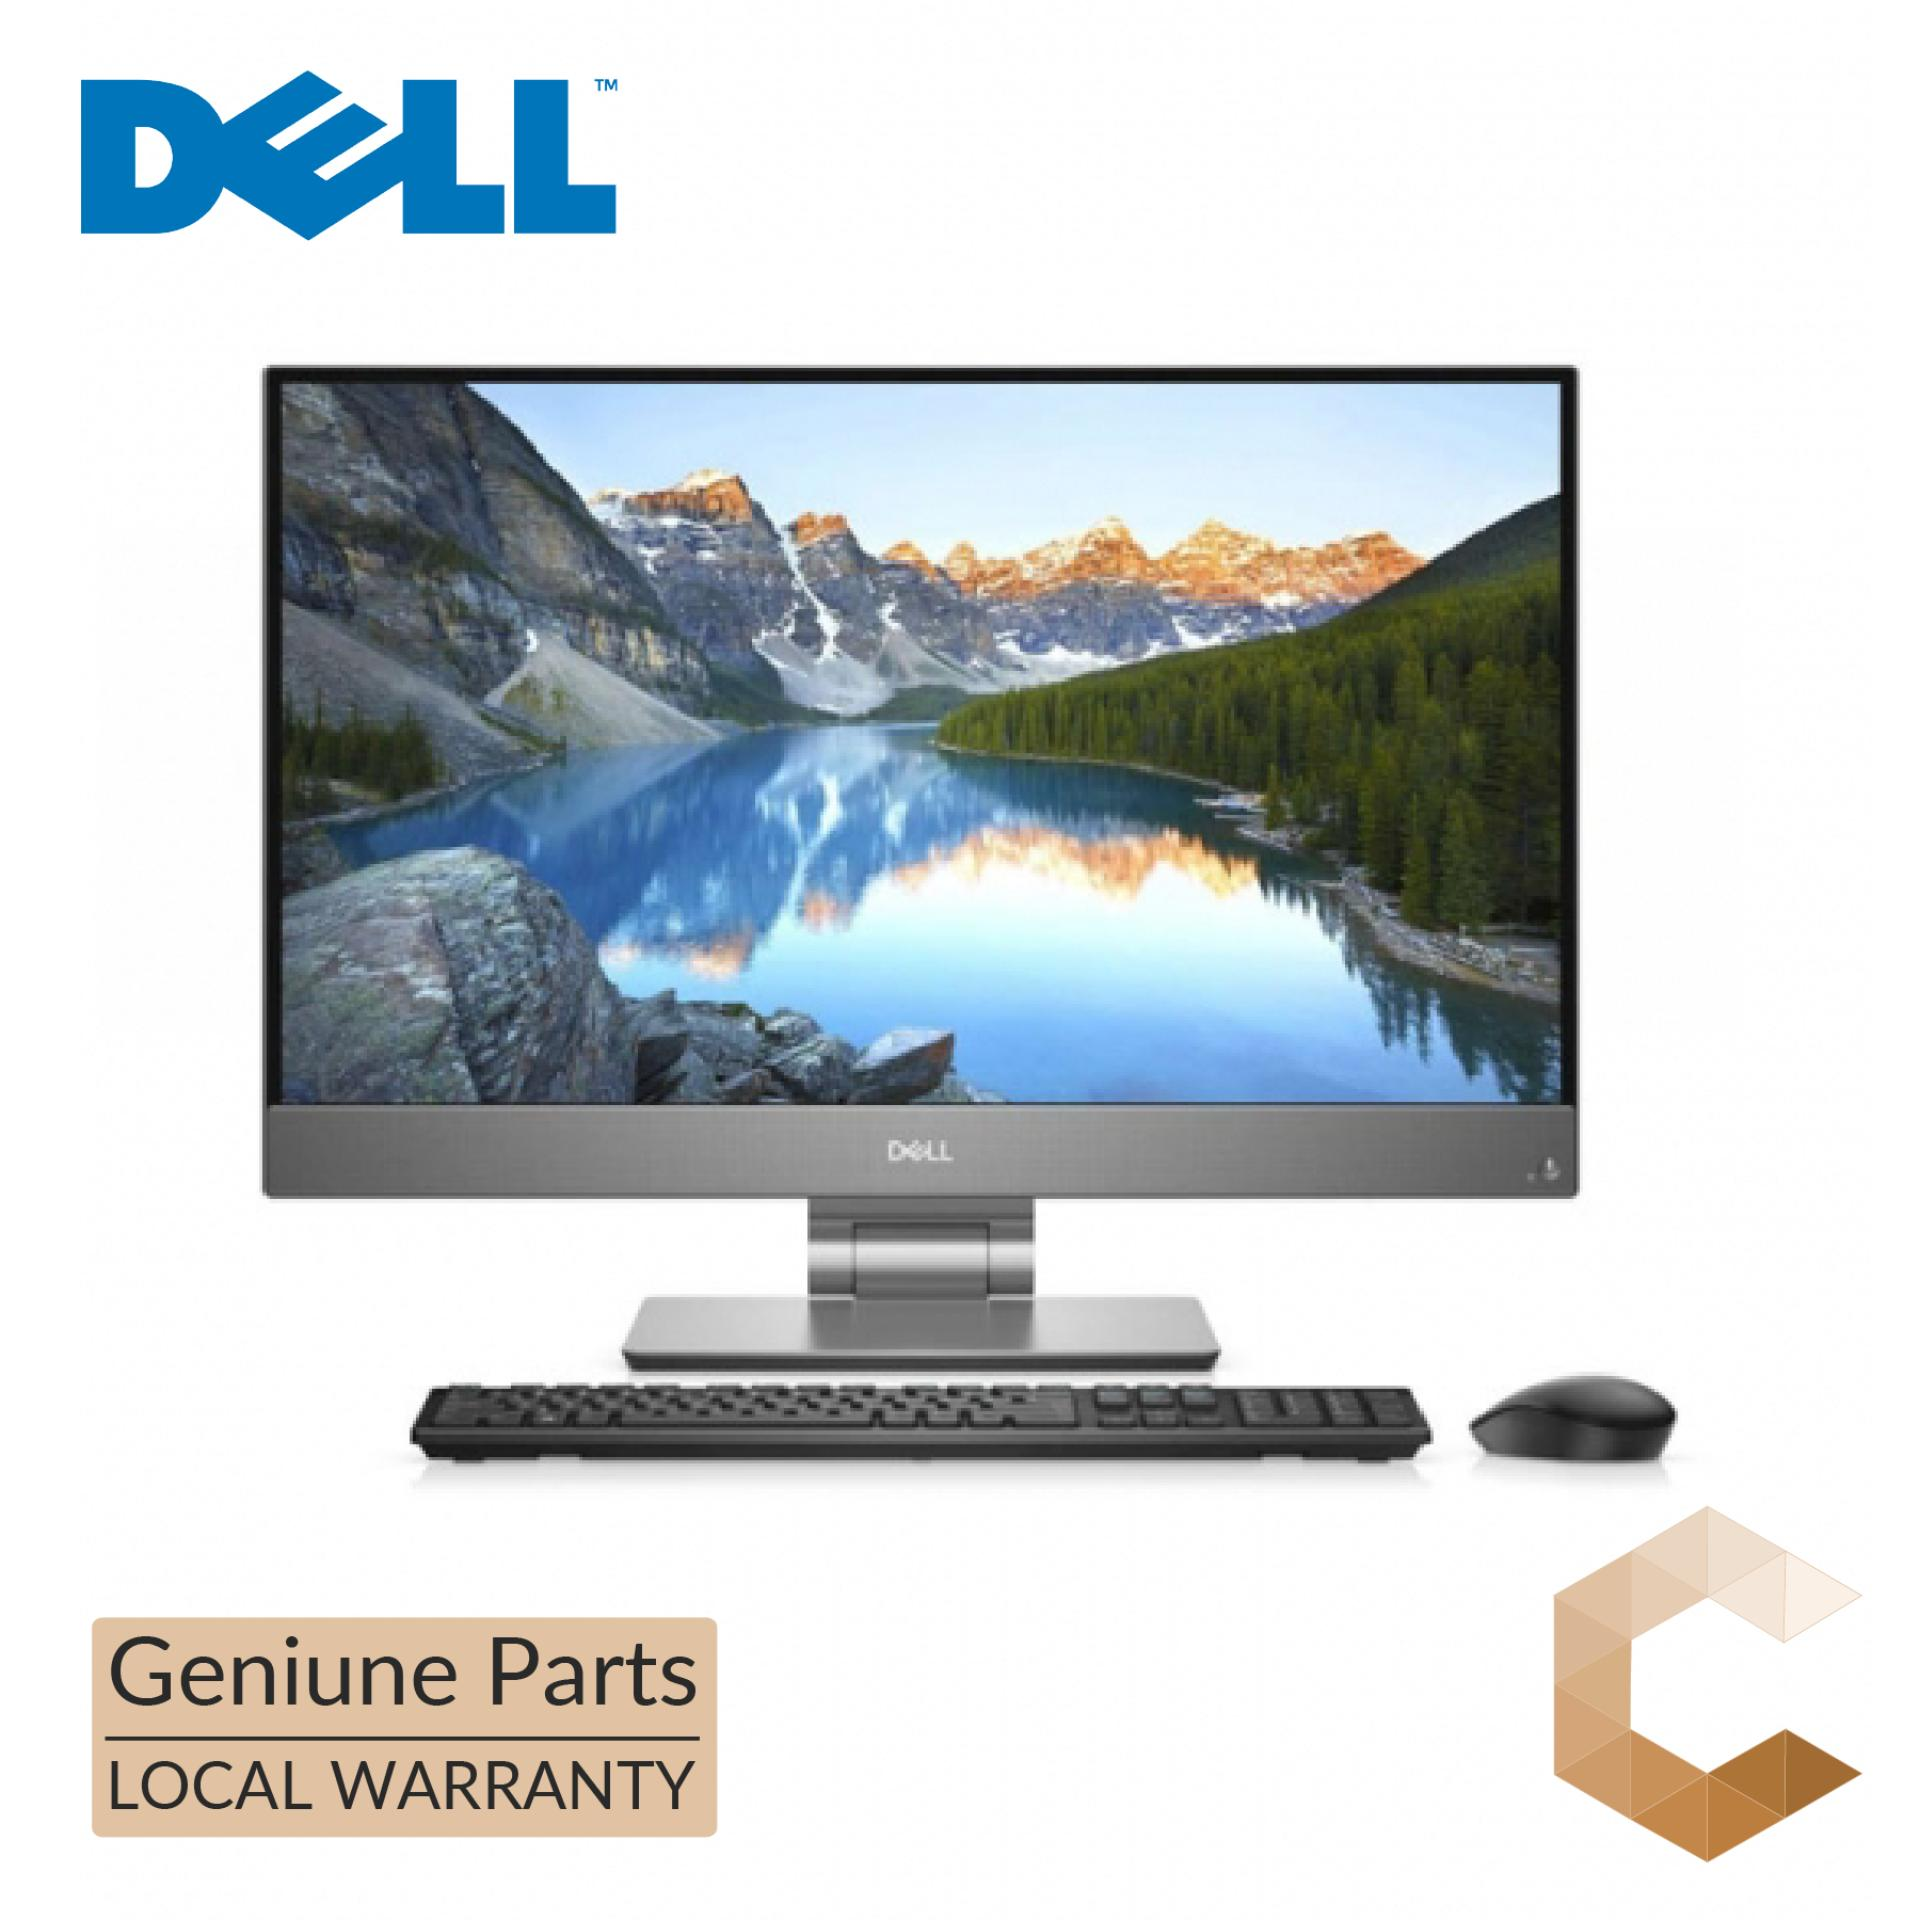 DELL DESKTOP | 7777-870114G-W10-Blk(T)